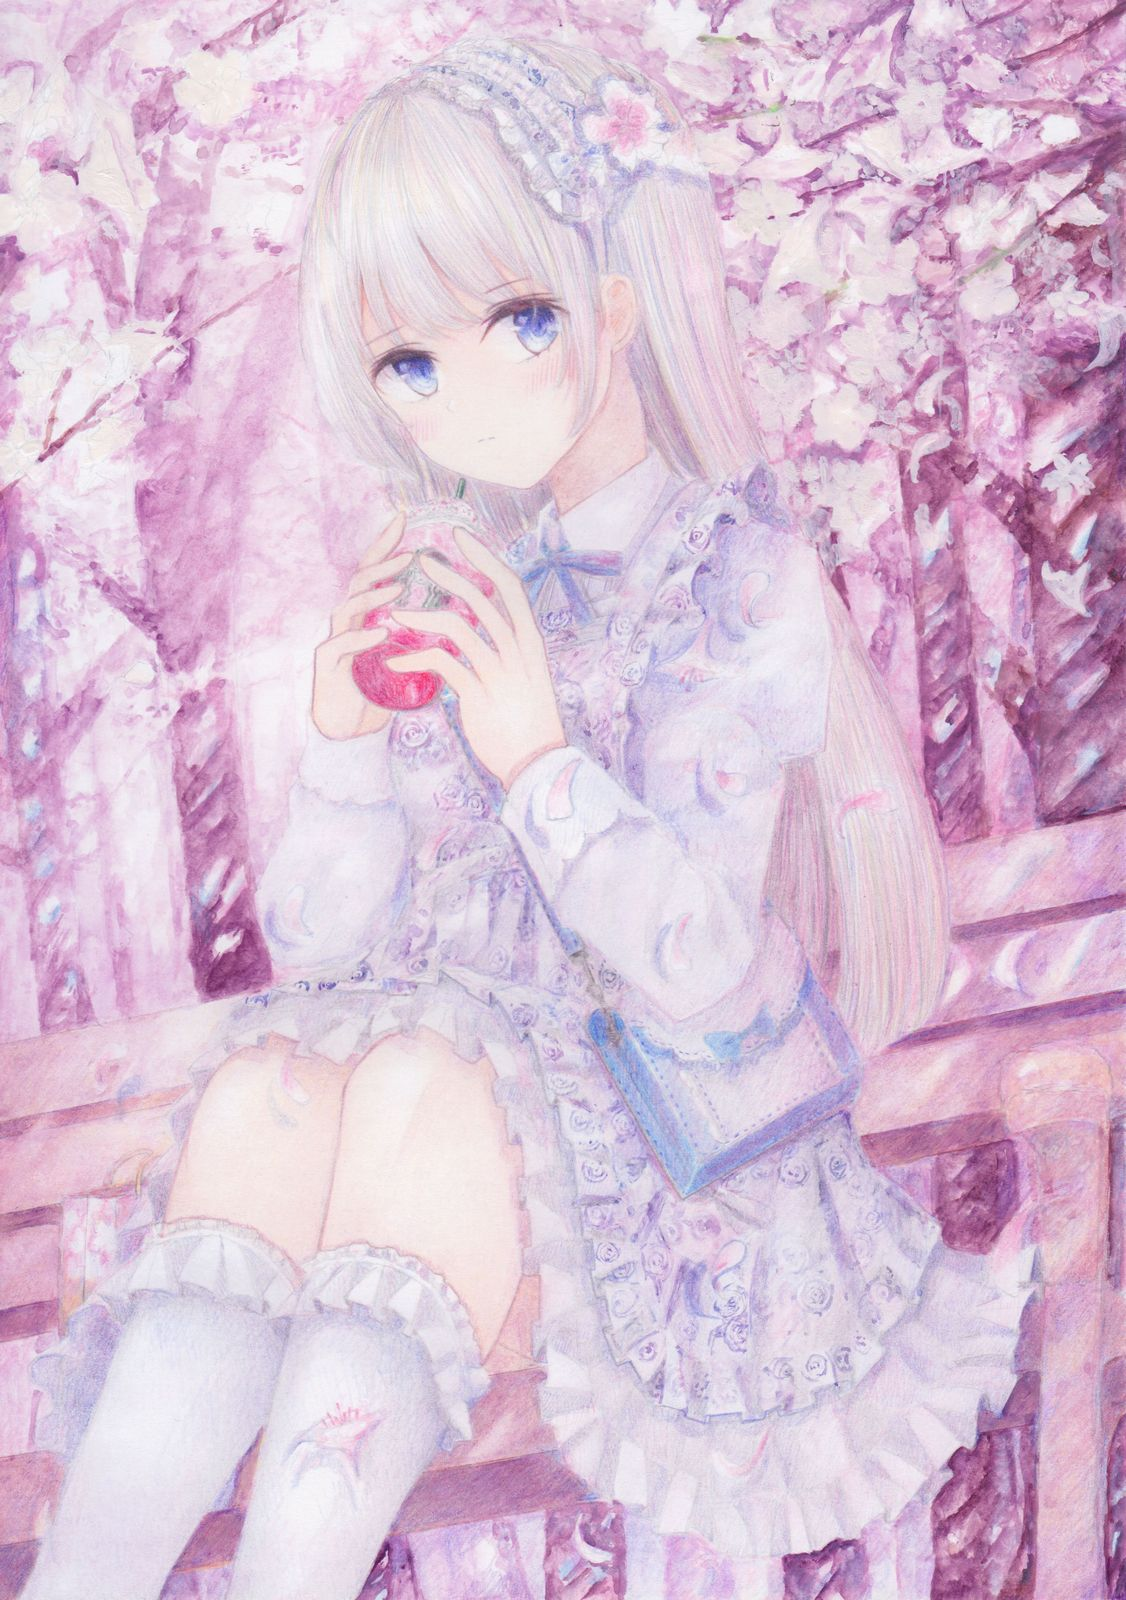 1girl apron bag bench blue_eyes blush cherry_blossoms colored_pencil_(medium) cup darkkanan disposable_cup dress drinking eyebrows_visible_through_hair forest frilled_apron frilled_dress frills hairband highres kneehighs legs lolita_fashion lolita_hairband long_hair looking_at_viewer nature original outdoors pinafore_dress pink_background shoulder_bag sidelocks sitting solo traditional_media watercolor_(medium) white_dress white_hair white_legwear